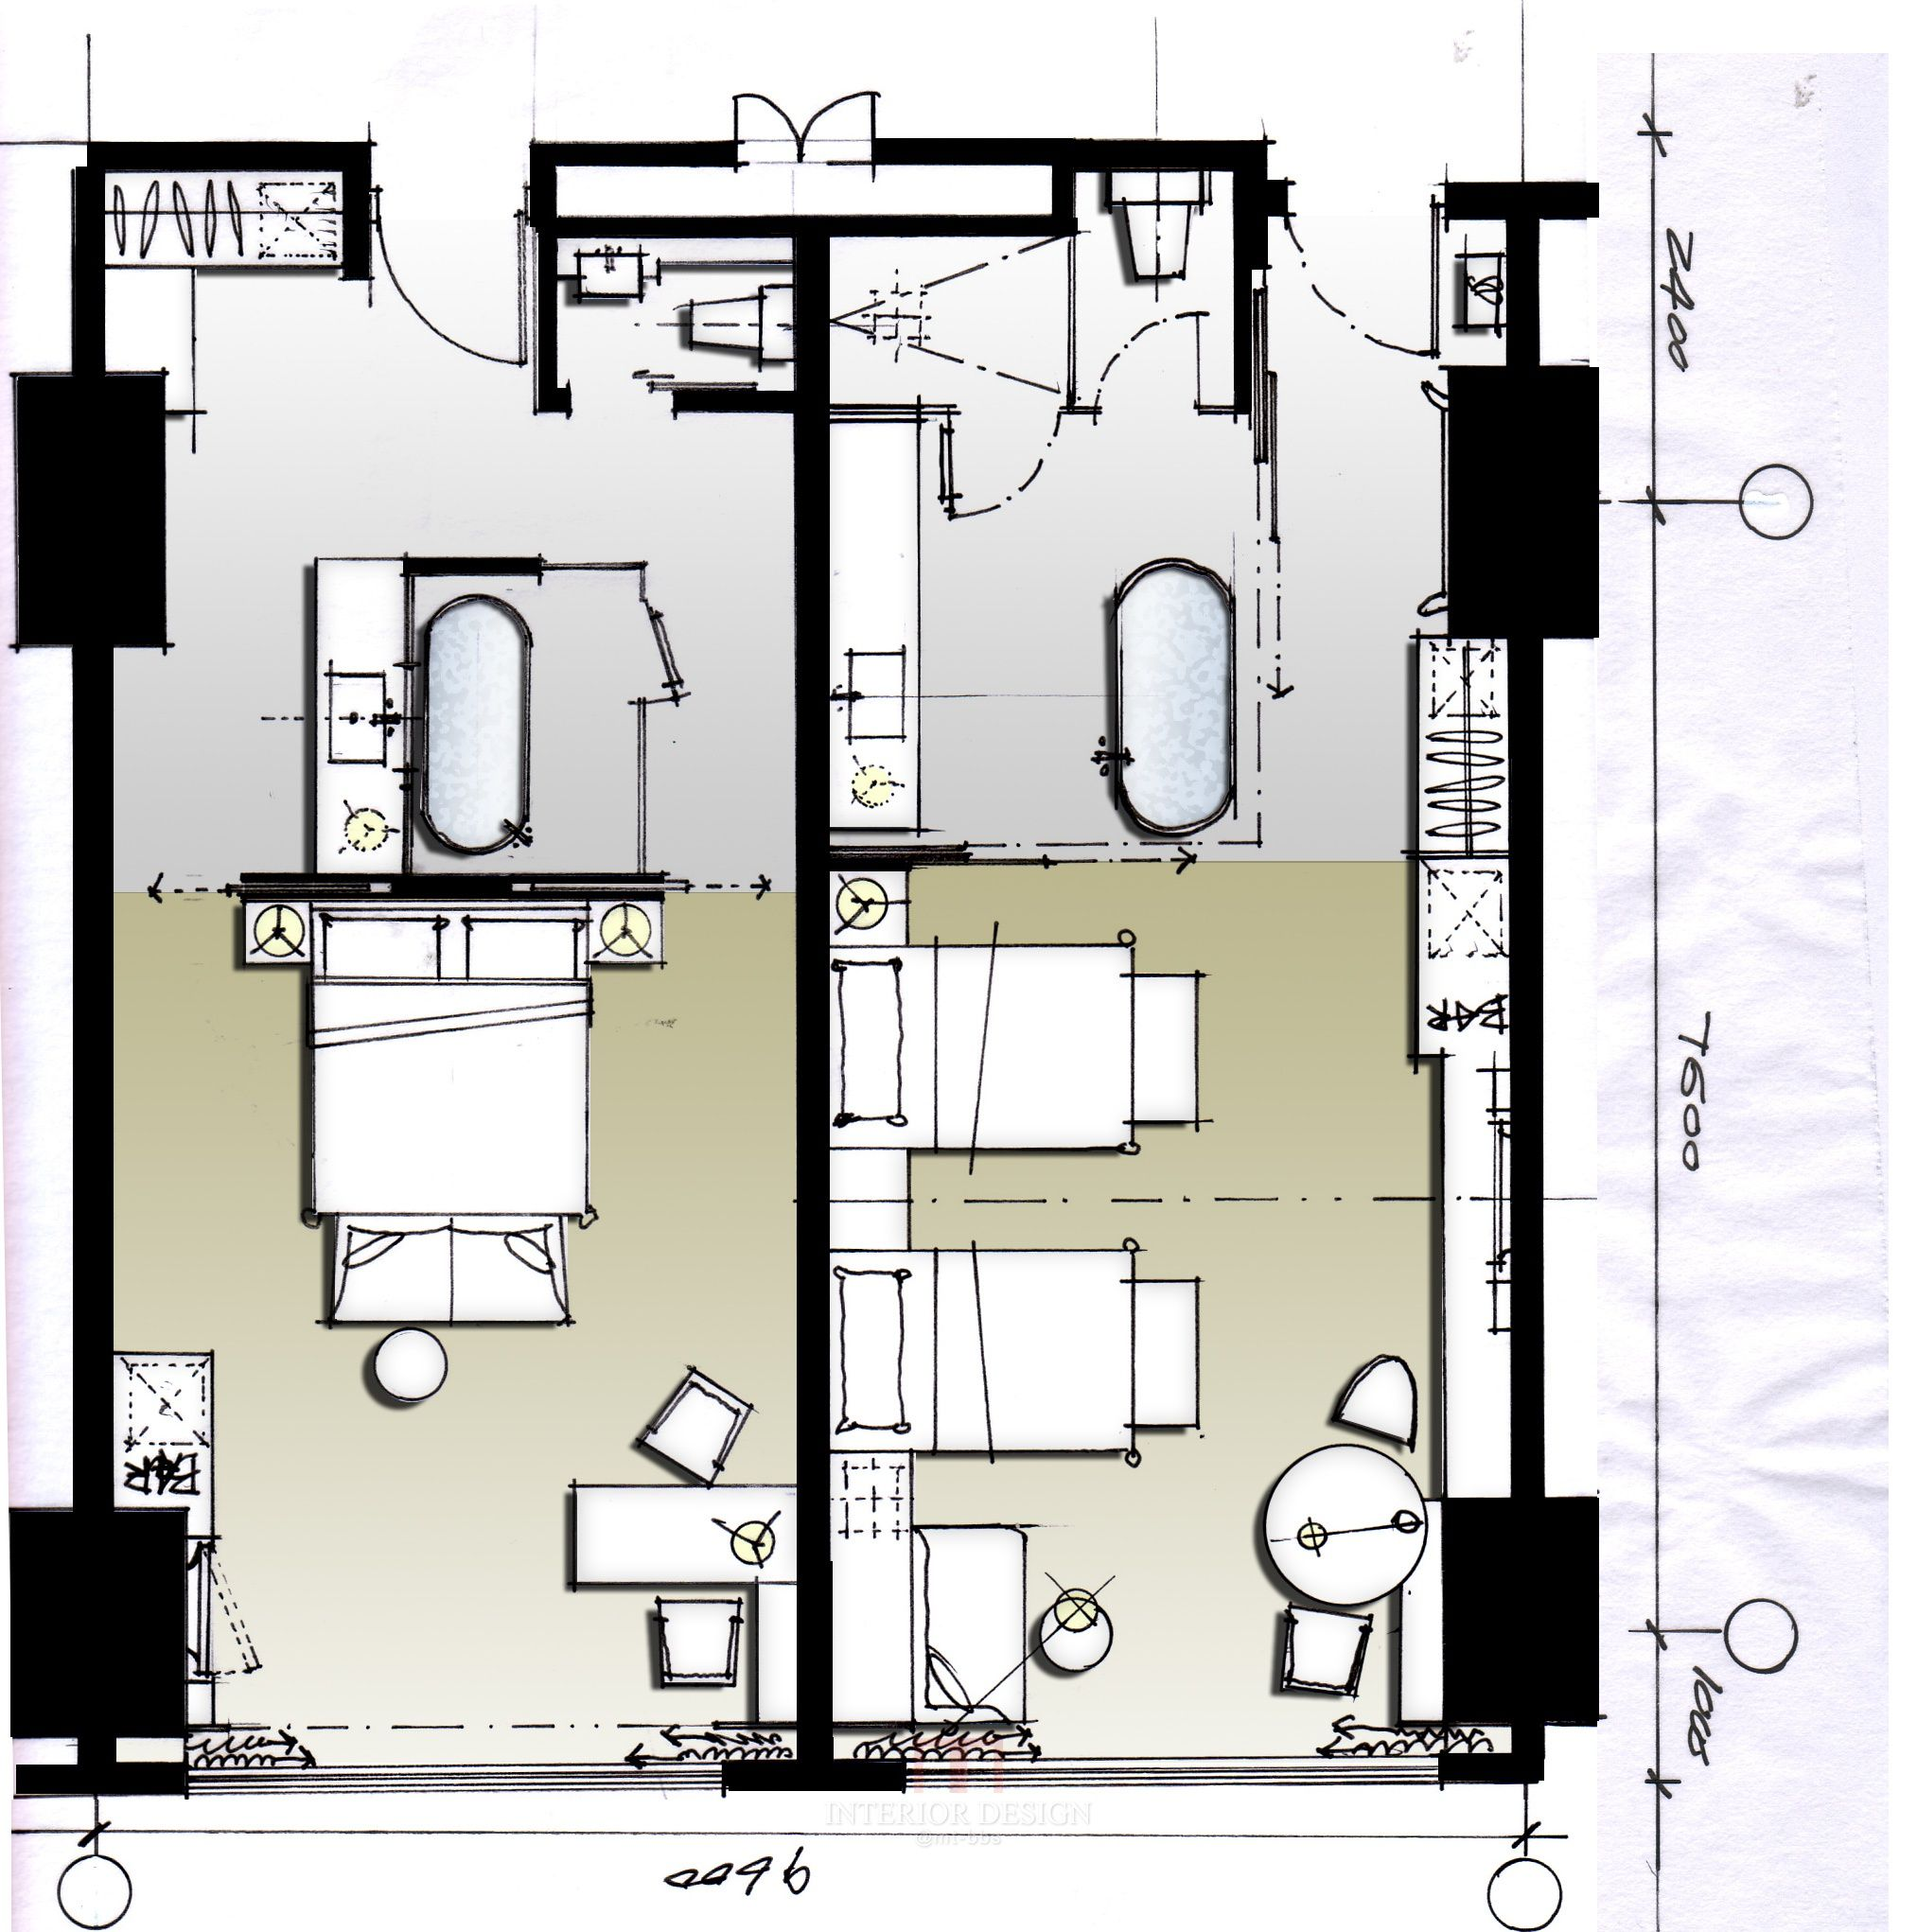 Hotel plan archtects pinterest room interiors and for Hotel plan design